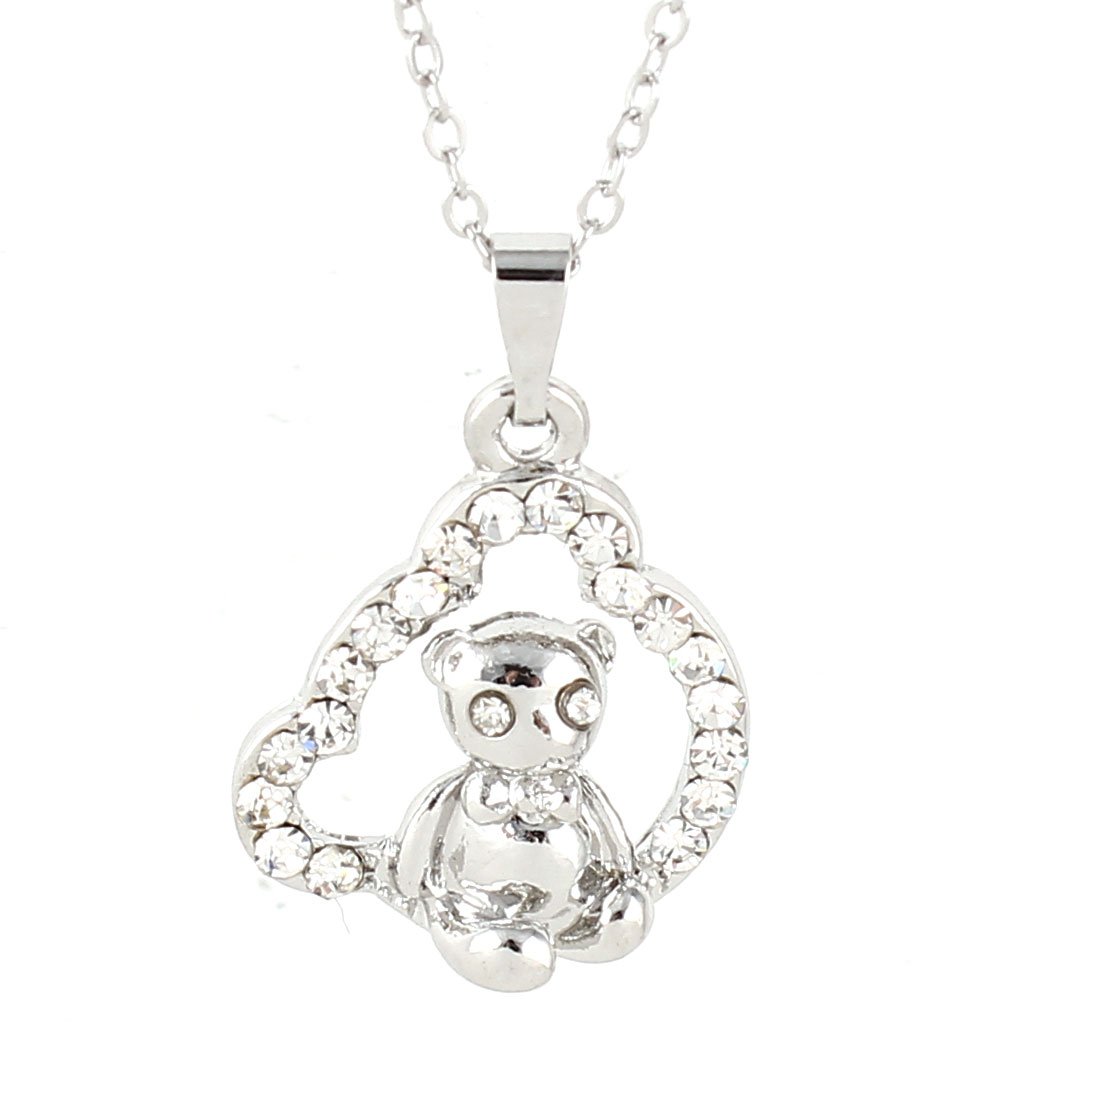 Lady Silver Tone Chain Link Swing Bear Pendant Rhinestone Detailing Necklace